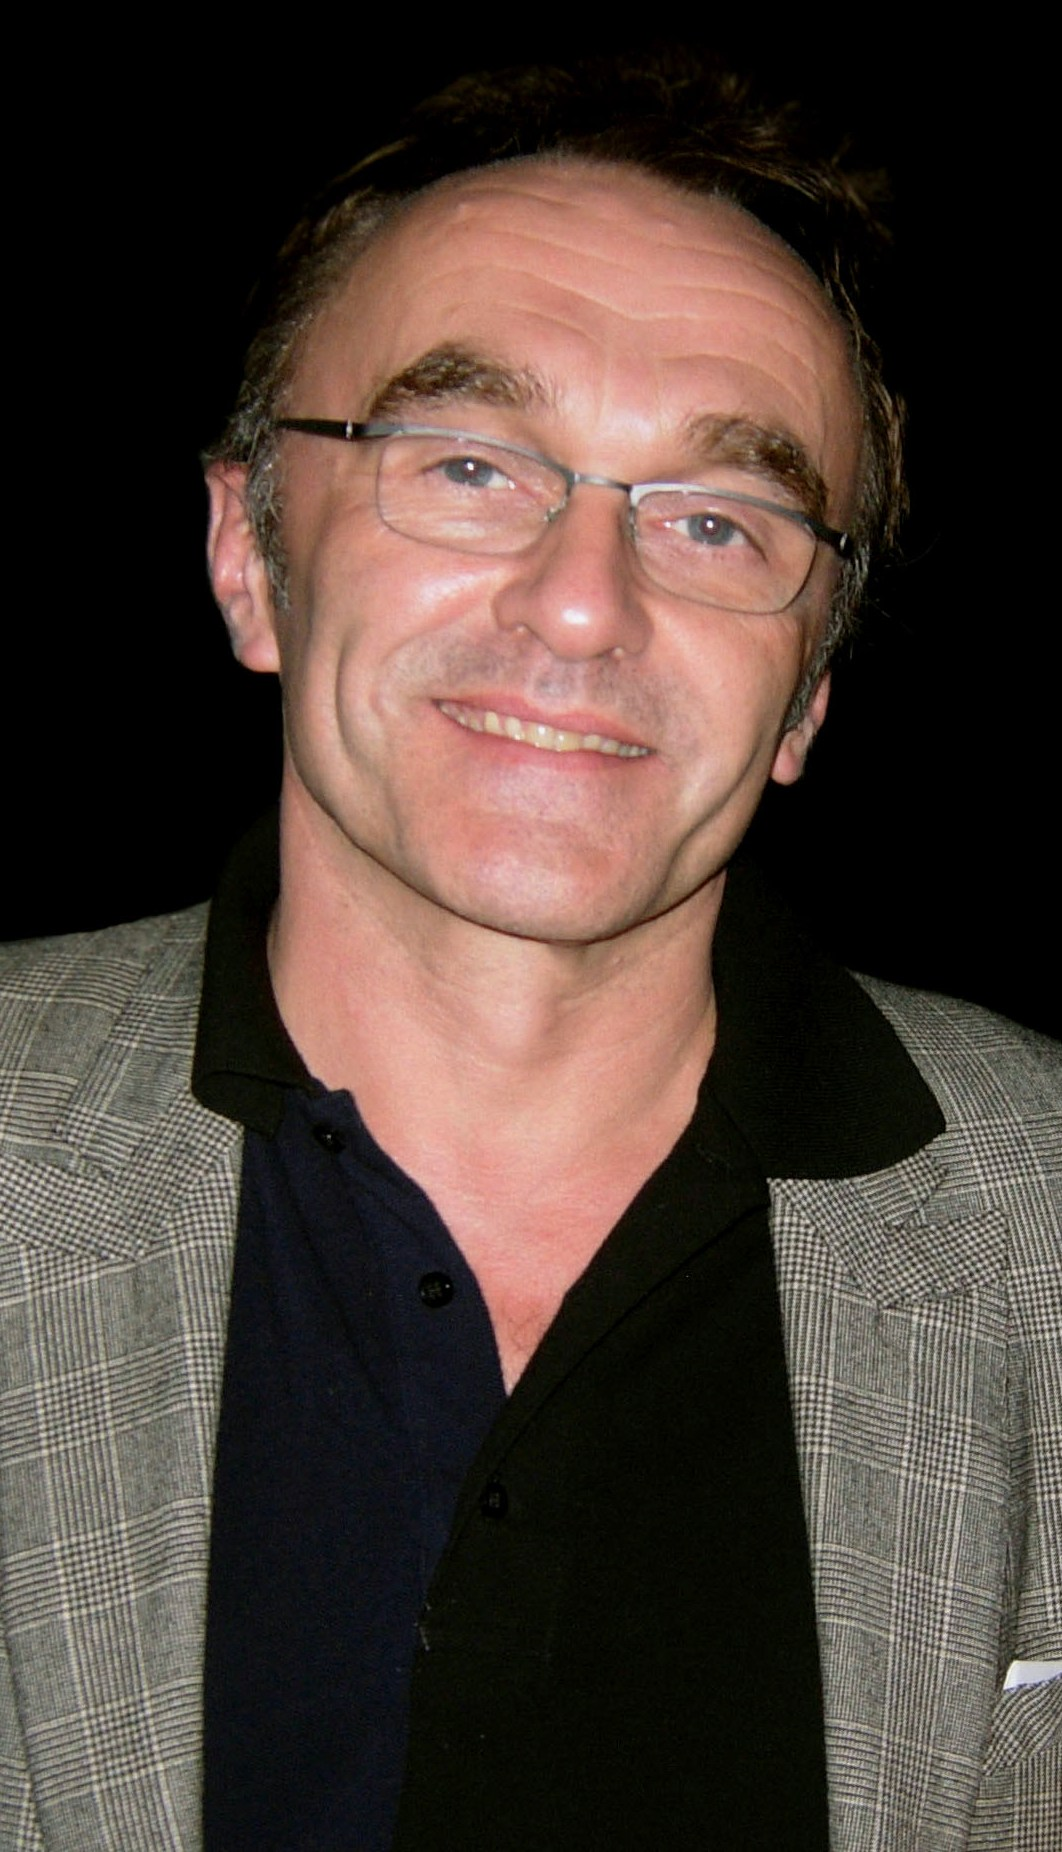 The 61-year old son of father (?) and mother(?), 190 cm tall Danny Boyle in 2018 photo